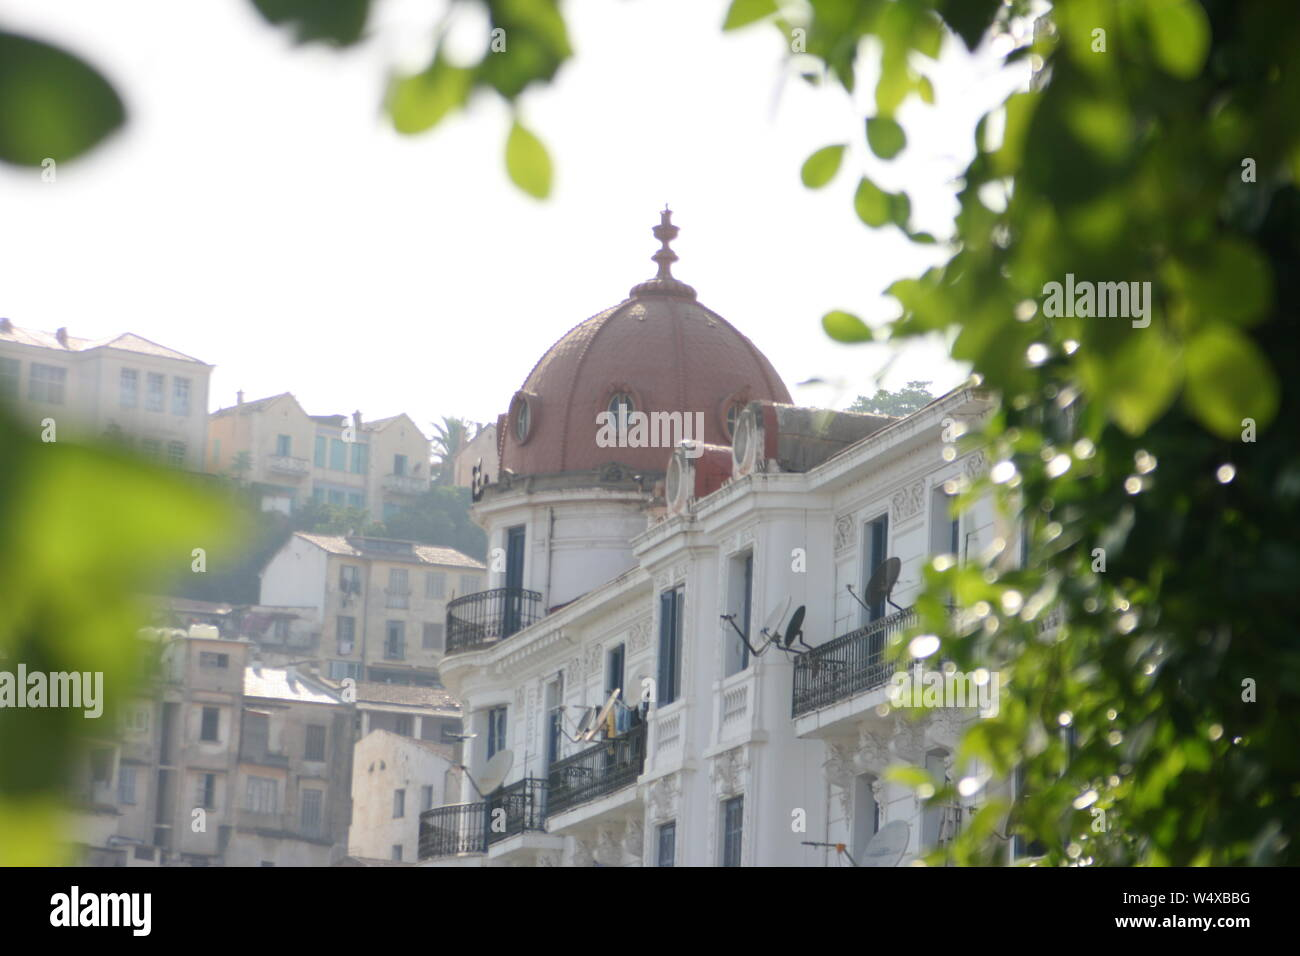 French colonial house with a dome, circled by tree leaves in Bejaia Algeria Stock Photo